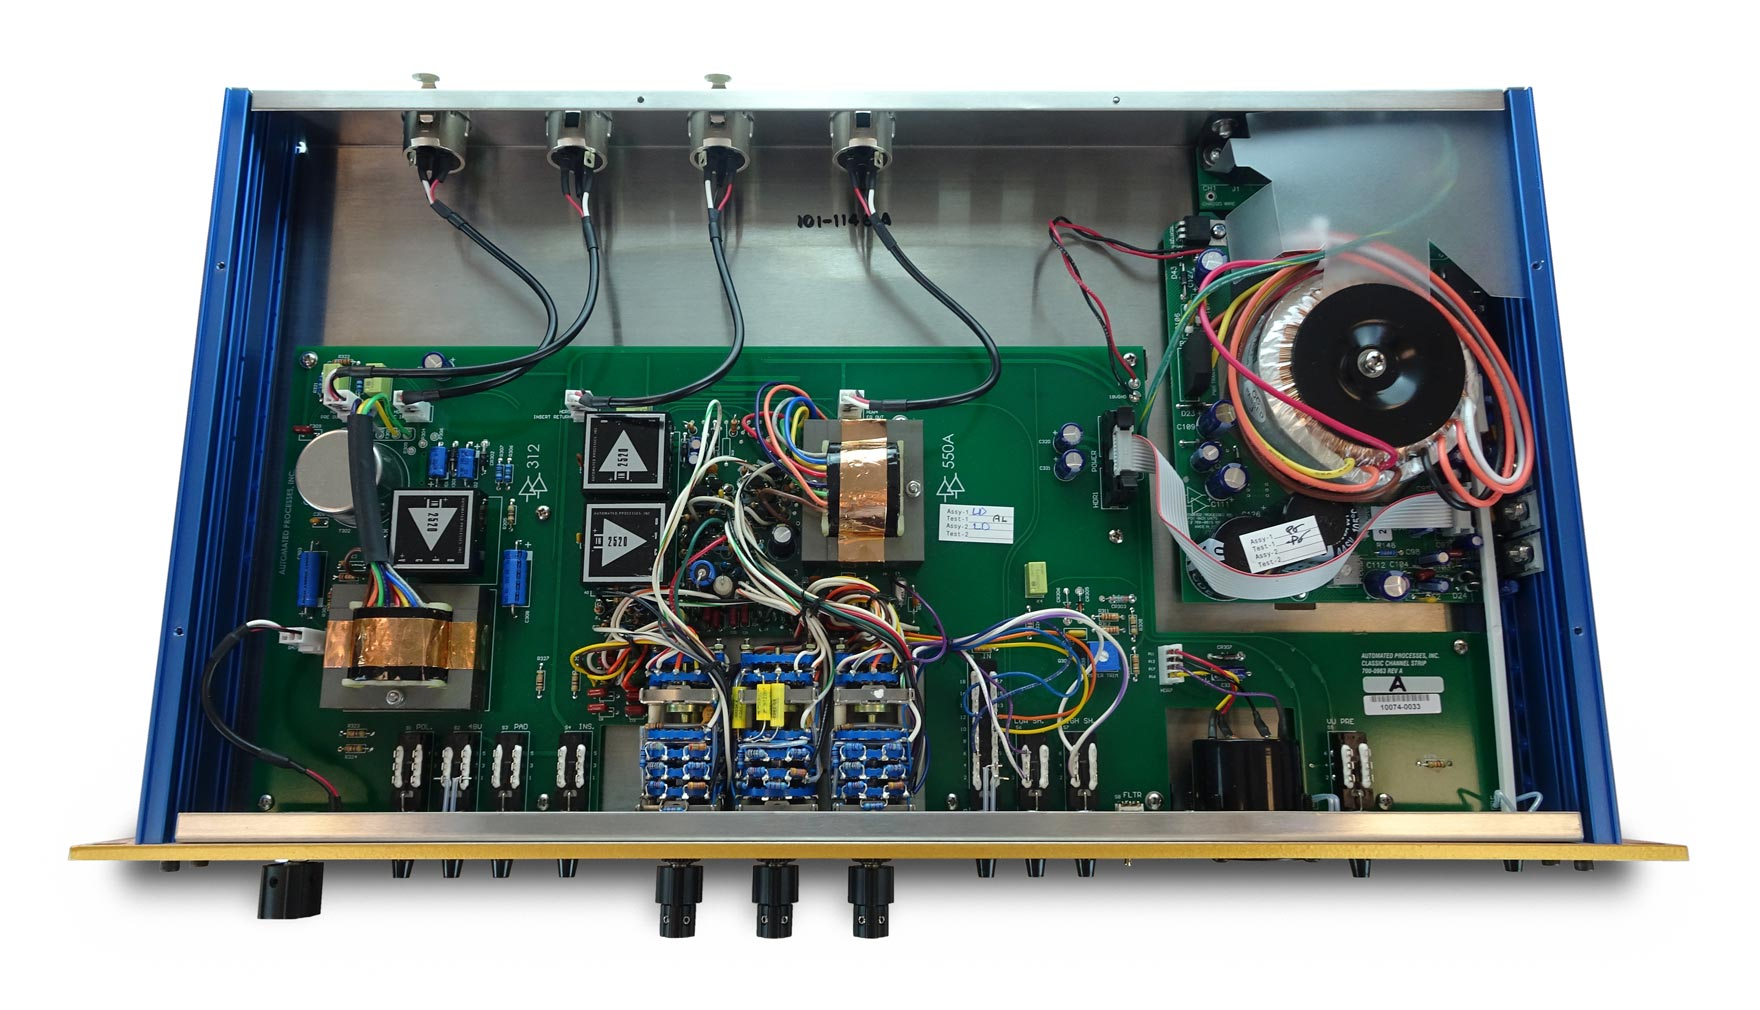 API 862 50th anniversary comp analog hardware outboard digiland audiofader